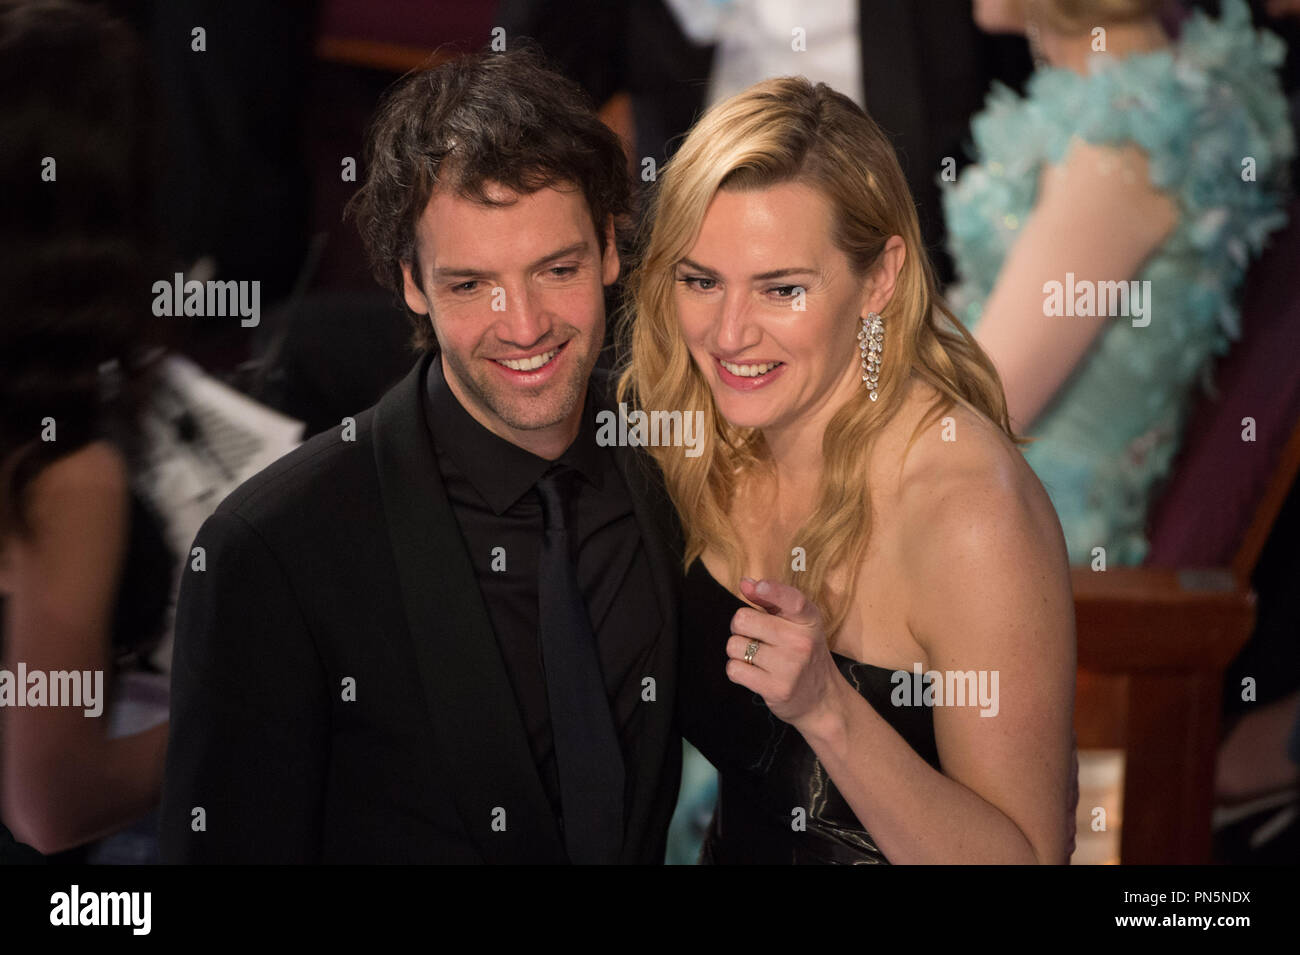 Kate Winslet and husband Ned Rocknroll during the live ABC Telecast of The 88th Oscars® at the Dolby® Theatre in Hollywood, CA on Sunday, February 28, 2016.  File Reference # 32854_780THA  For Editorial Use Only -  All Rights Reserved - Stock Image